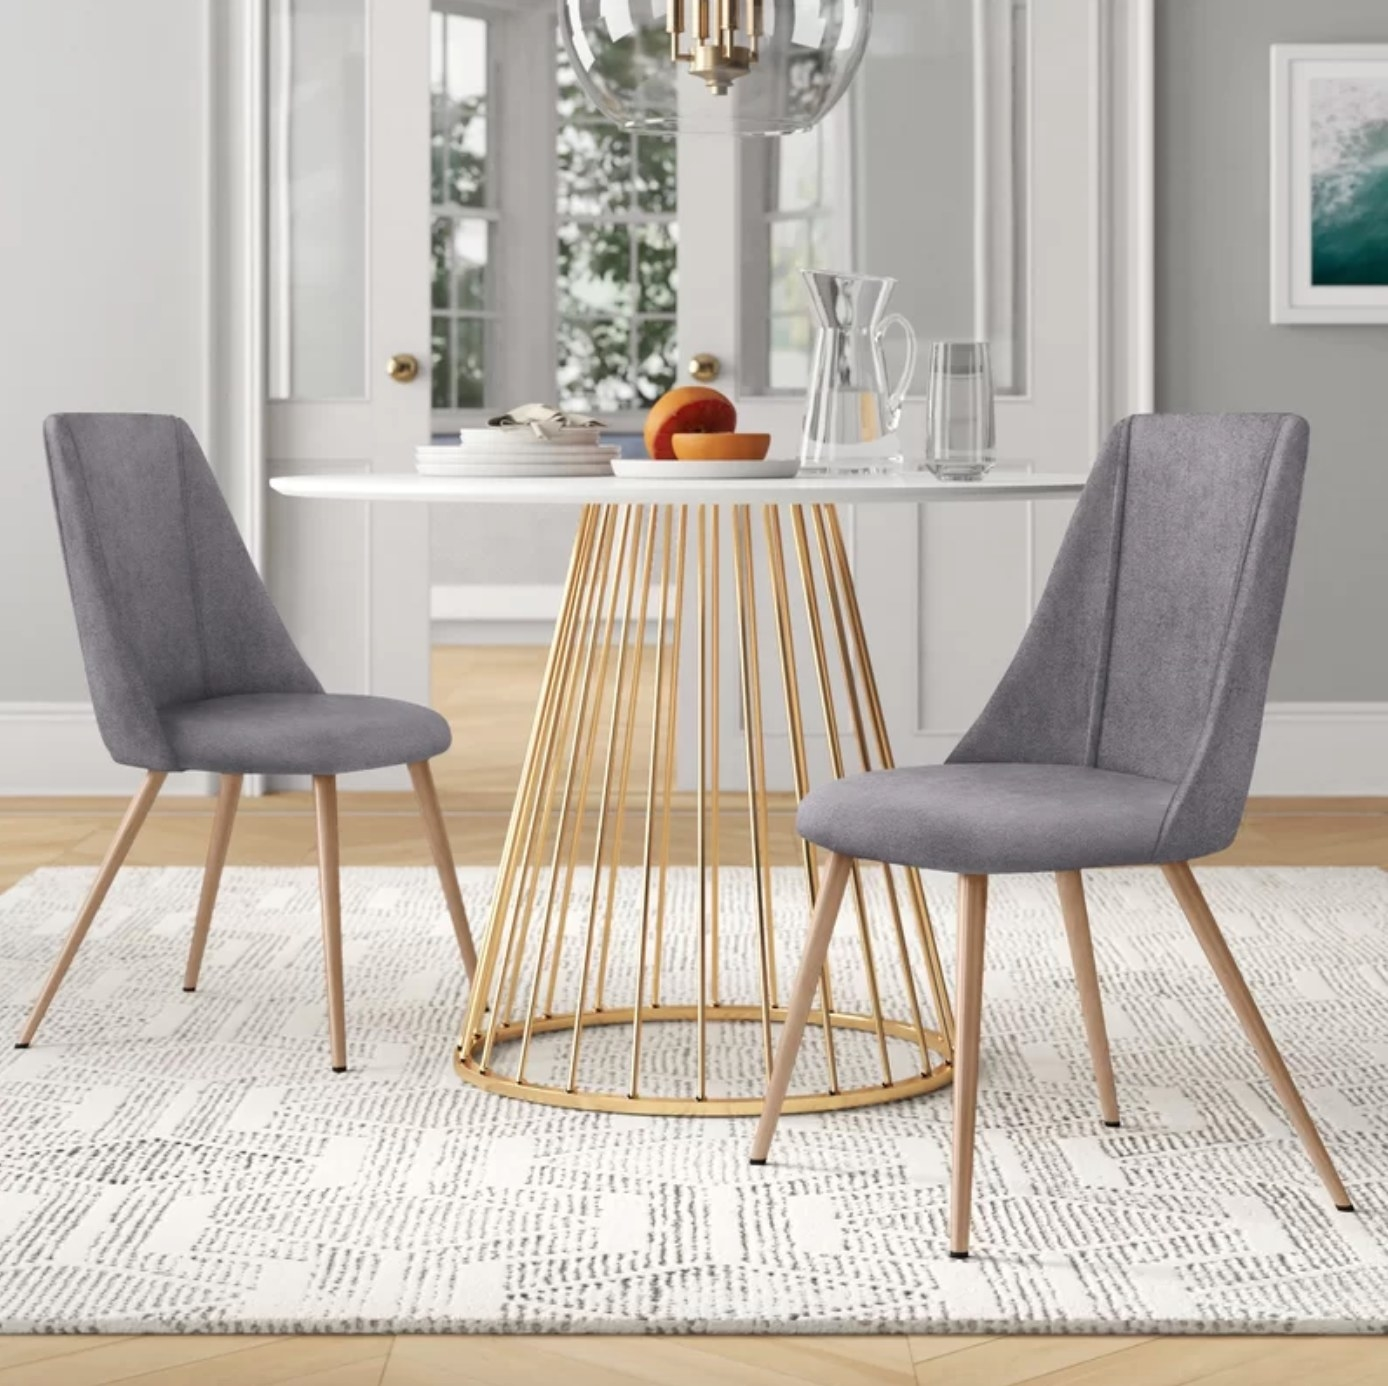 The set of two upholstered chairs in grey